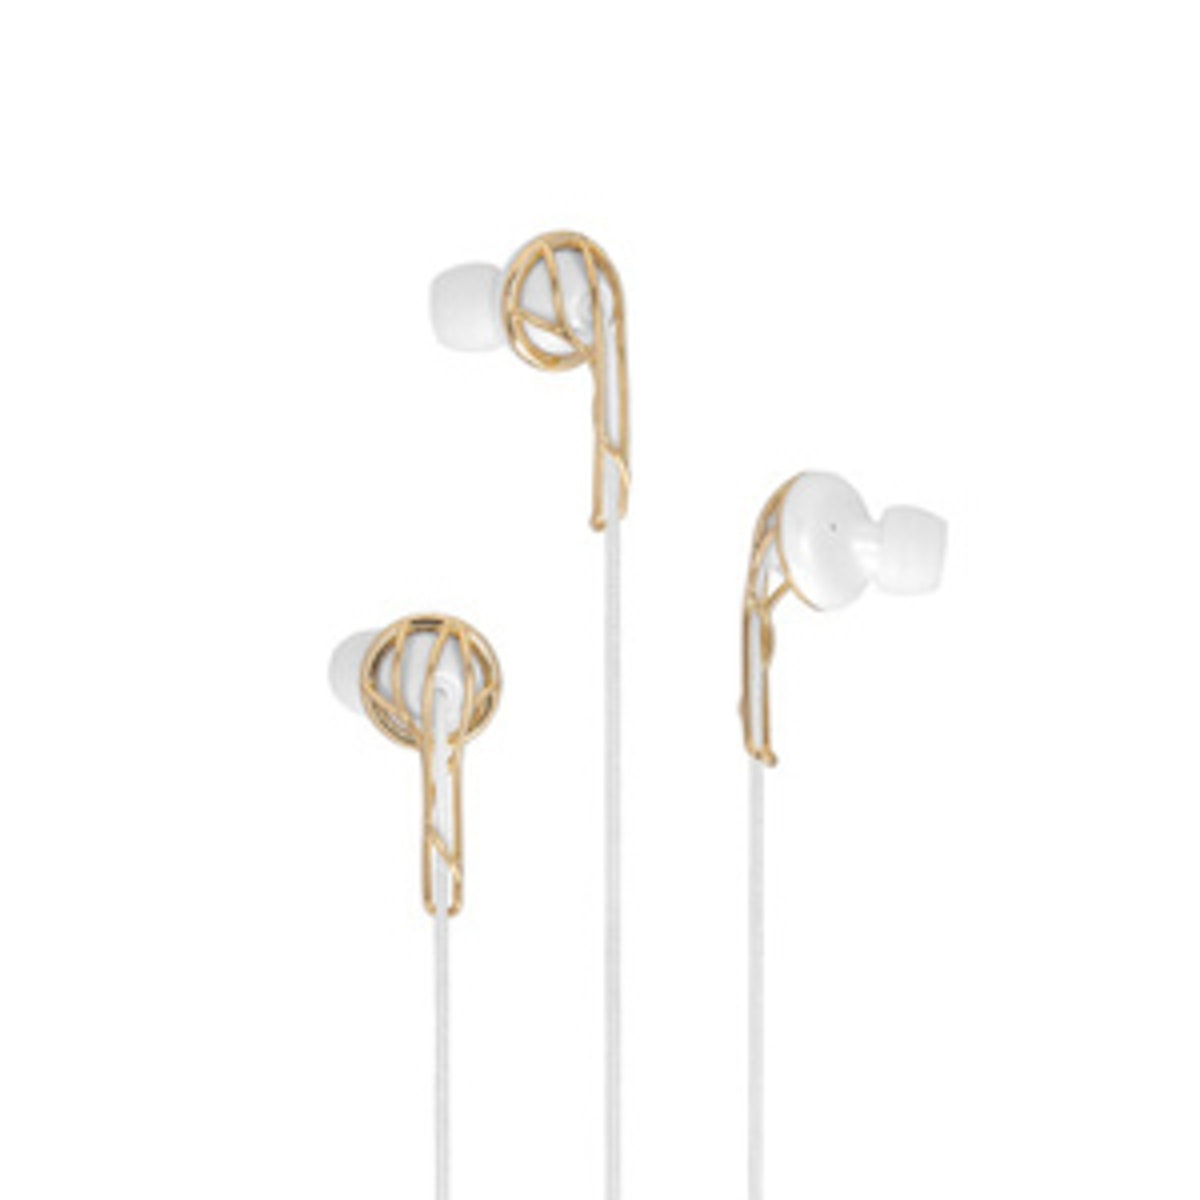 Gold Earbuds